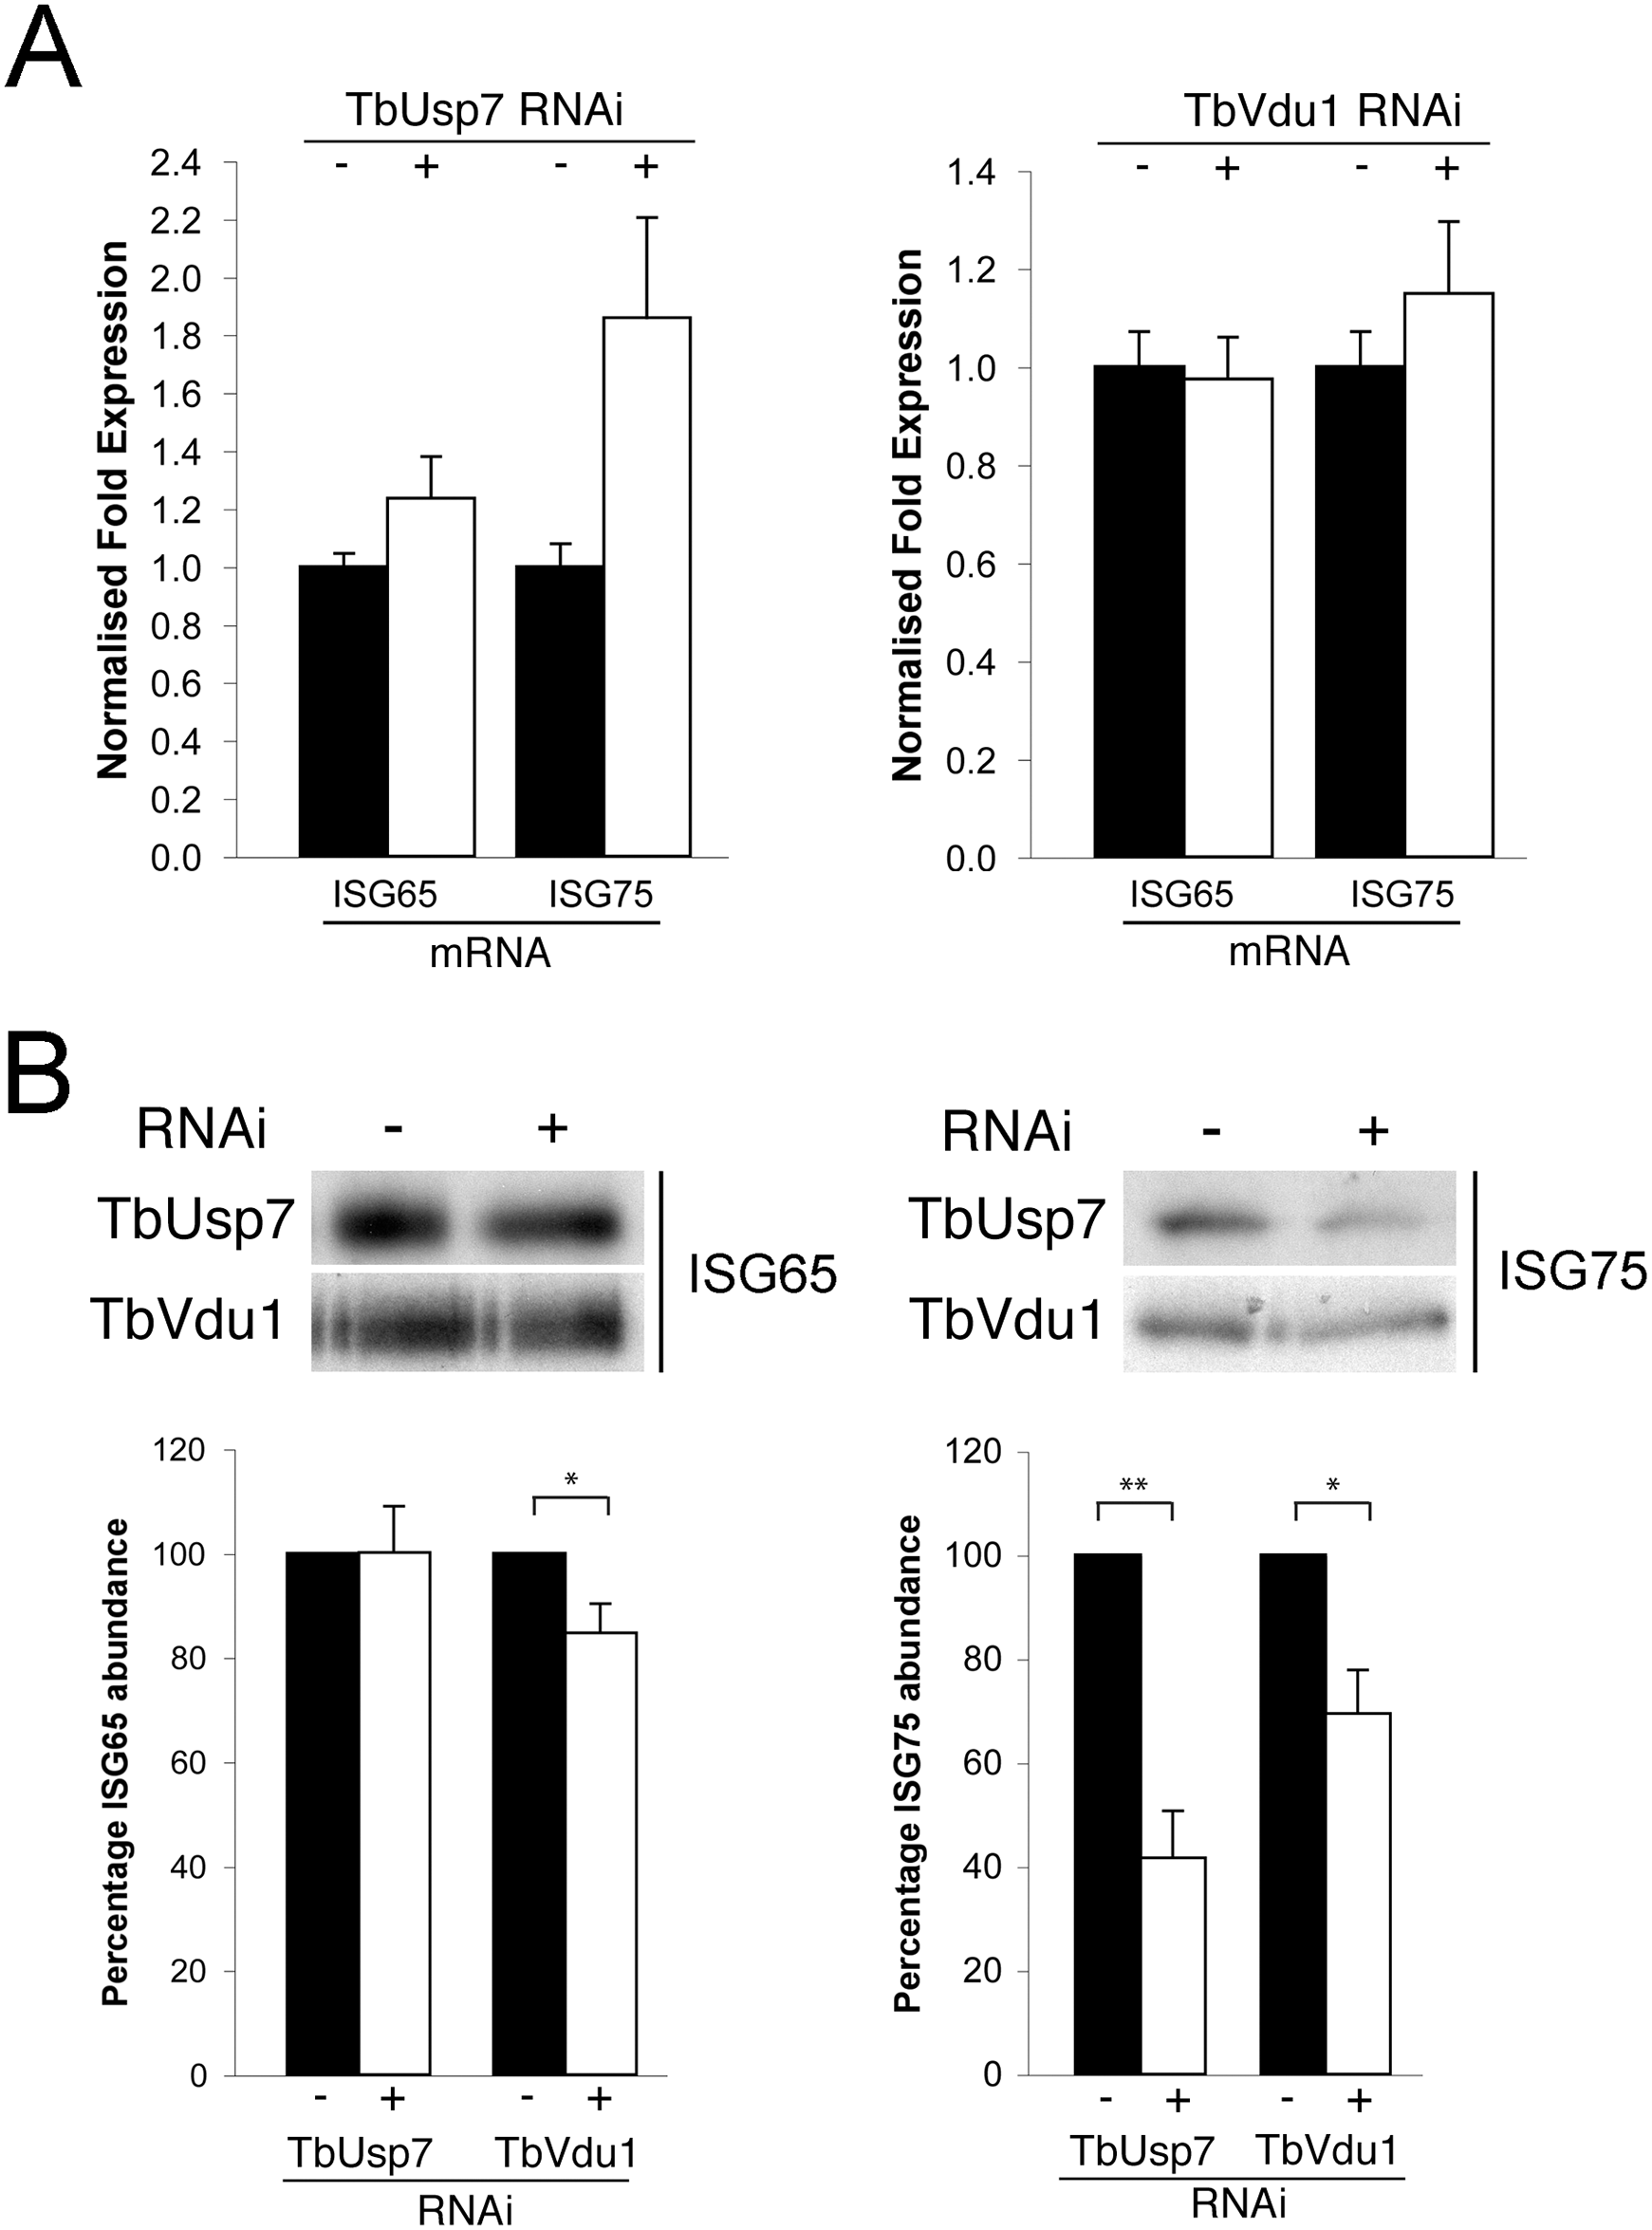 Assessment of ISG65 and ISG75 transcription and biosynthesis under TbUsp7 and TbVdu1 knockdown.